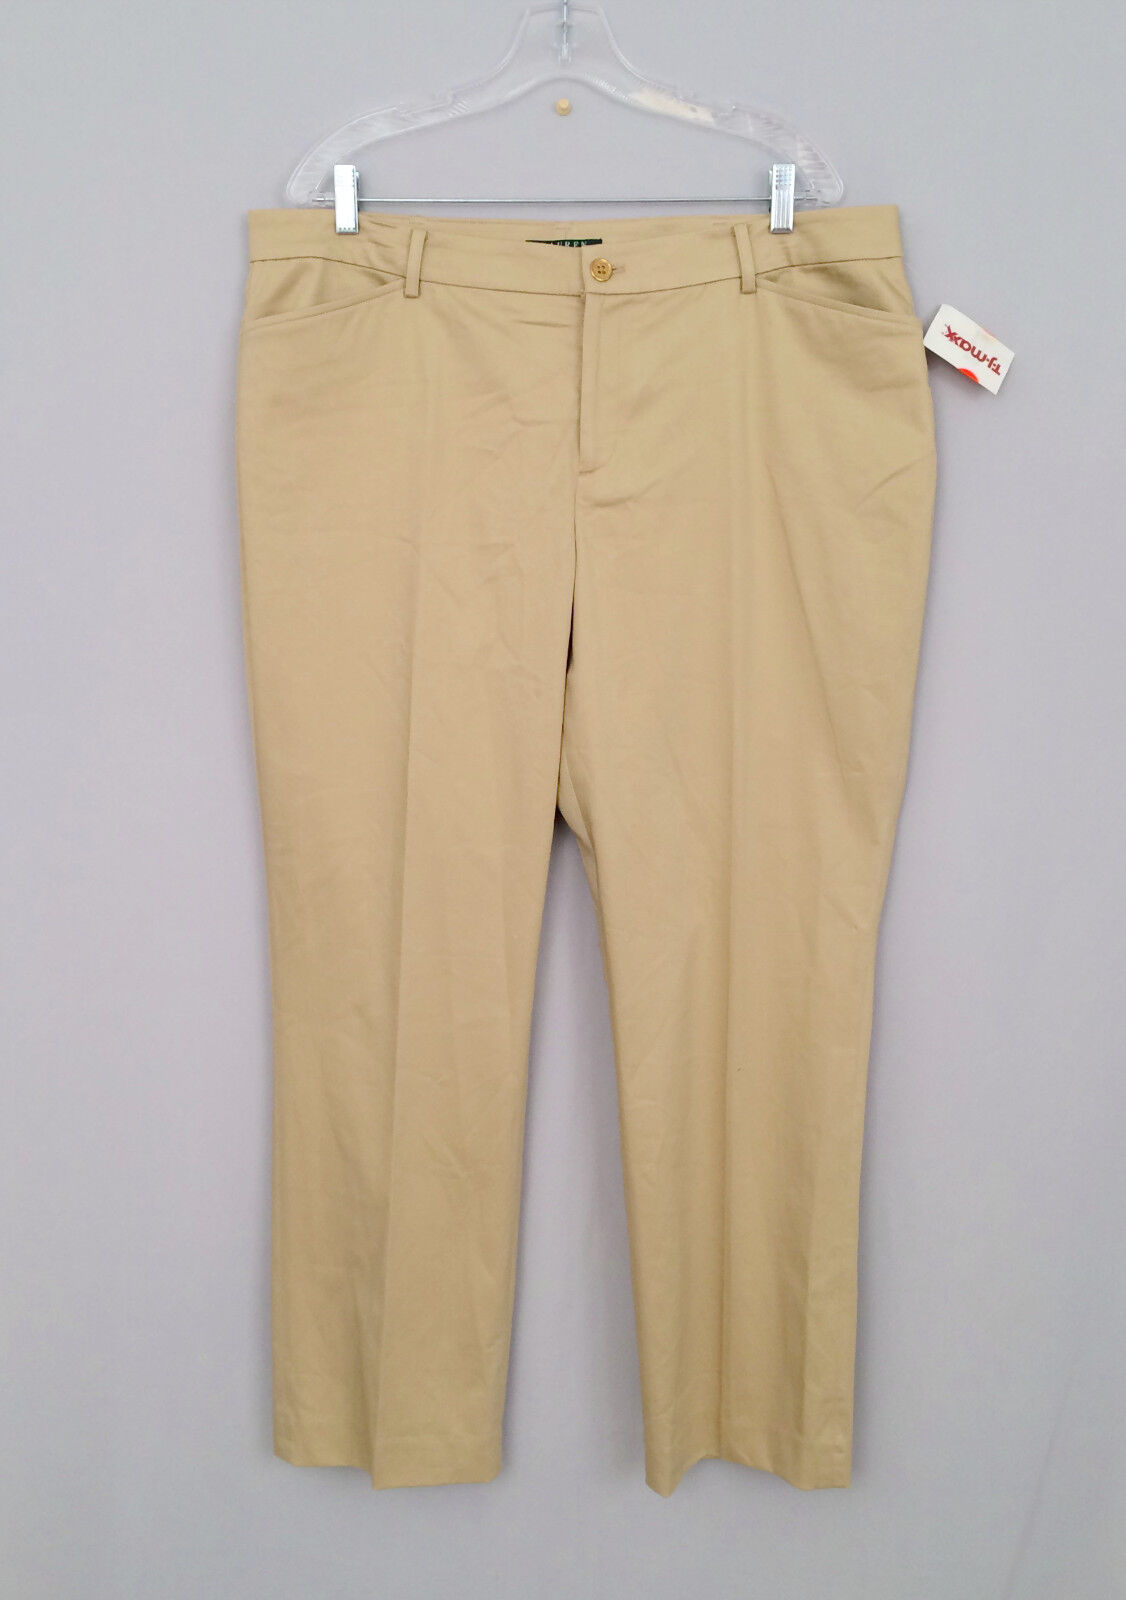 New LAUREN RALPH LAUREN Women's Sz.16 Khaki Career Pants Cotton Blend NWT